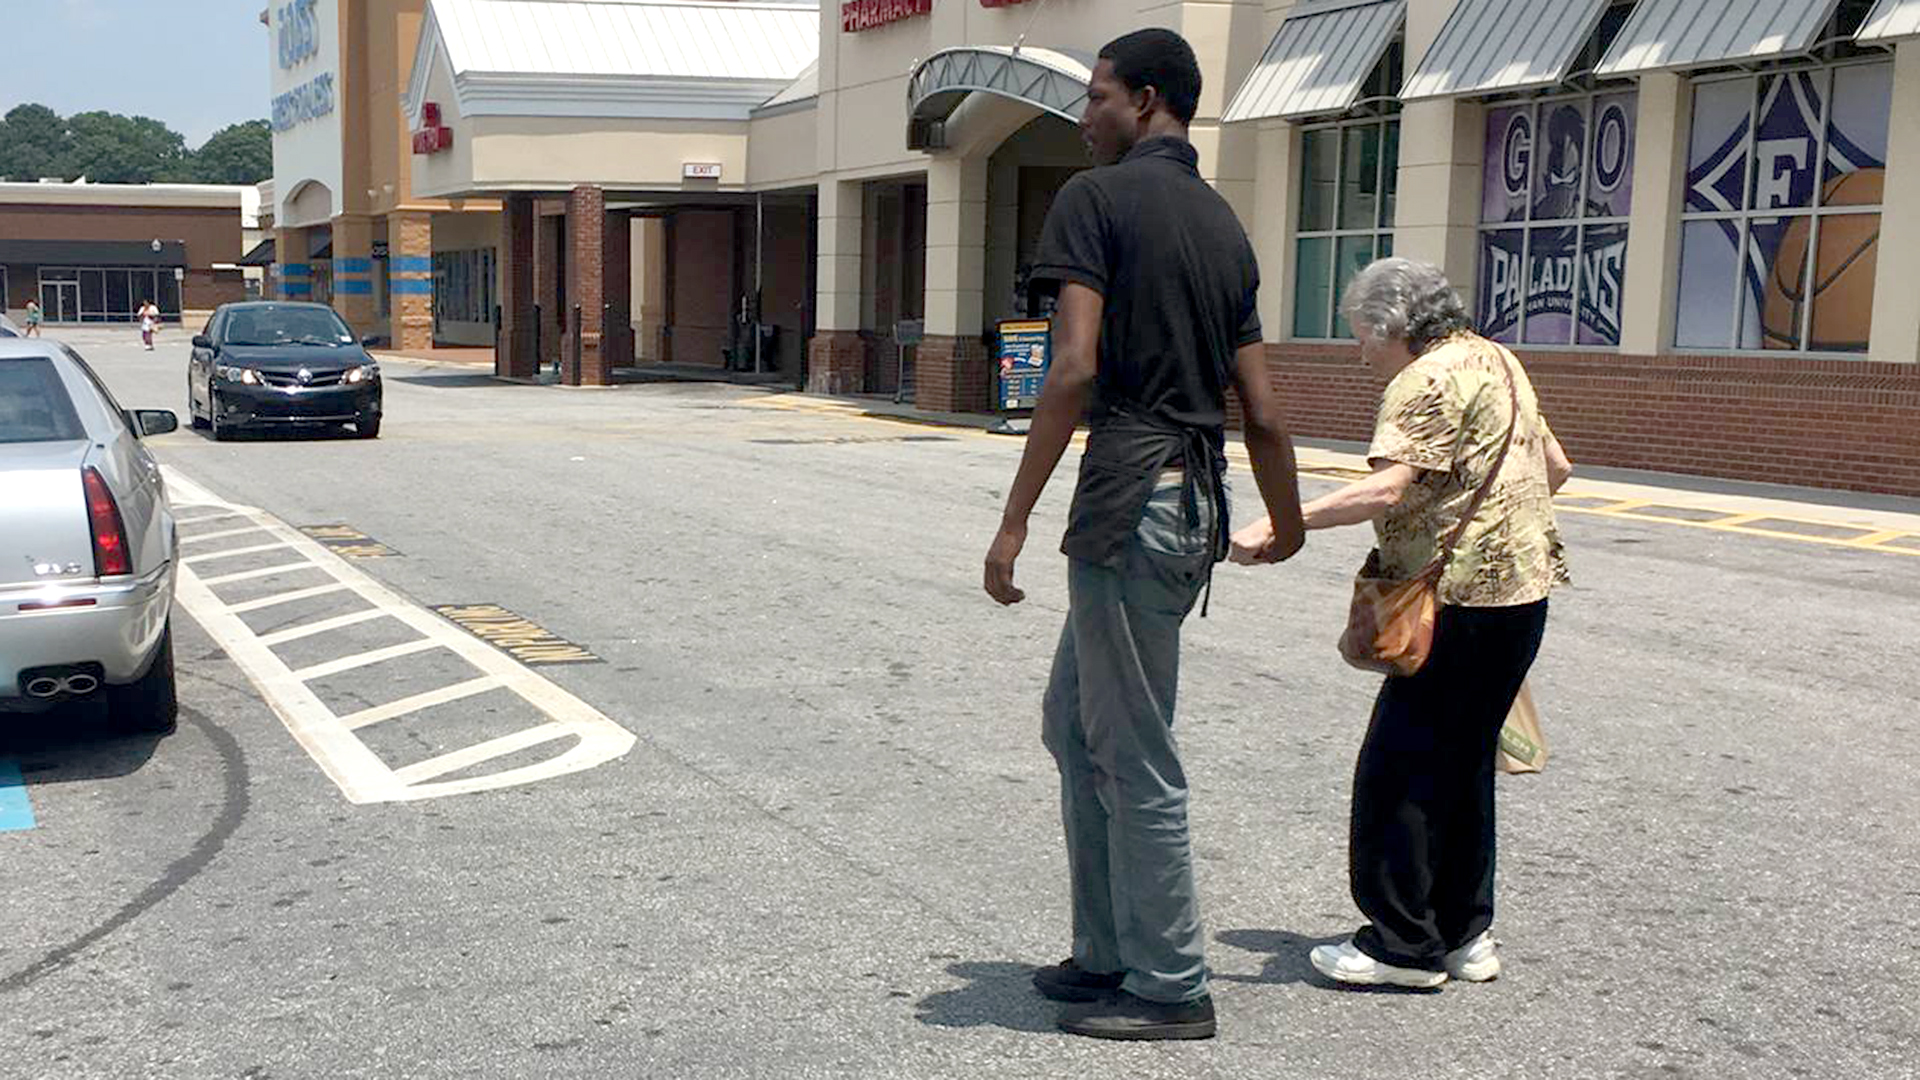 Grocery Store Worker Helps Elderly Woman Walk Across